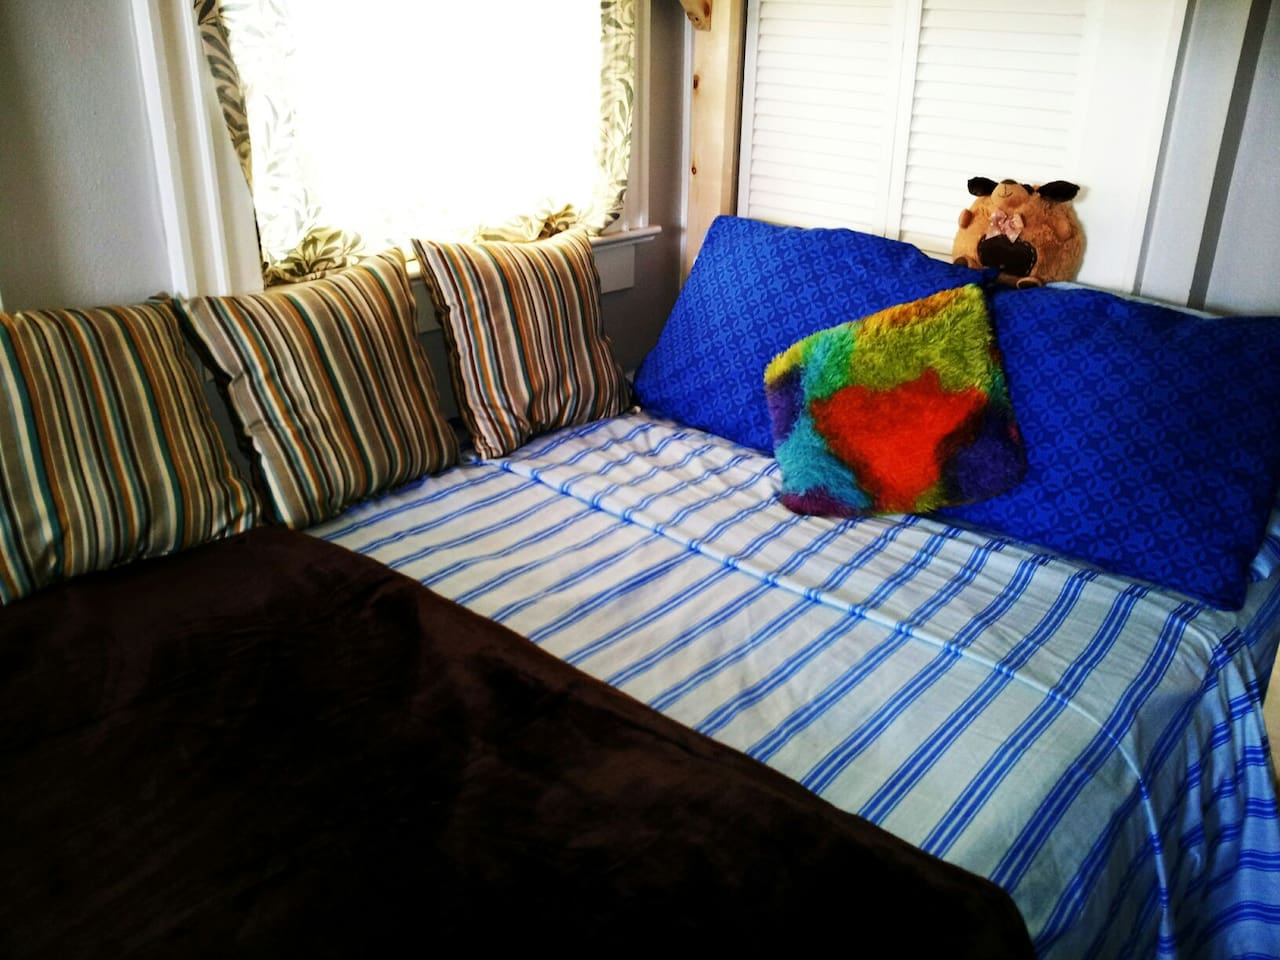 stuffed puppy, & plenty of pillows to keep you comfy, cozy company. (: